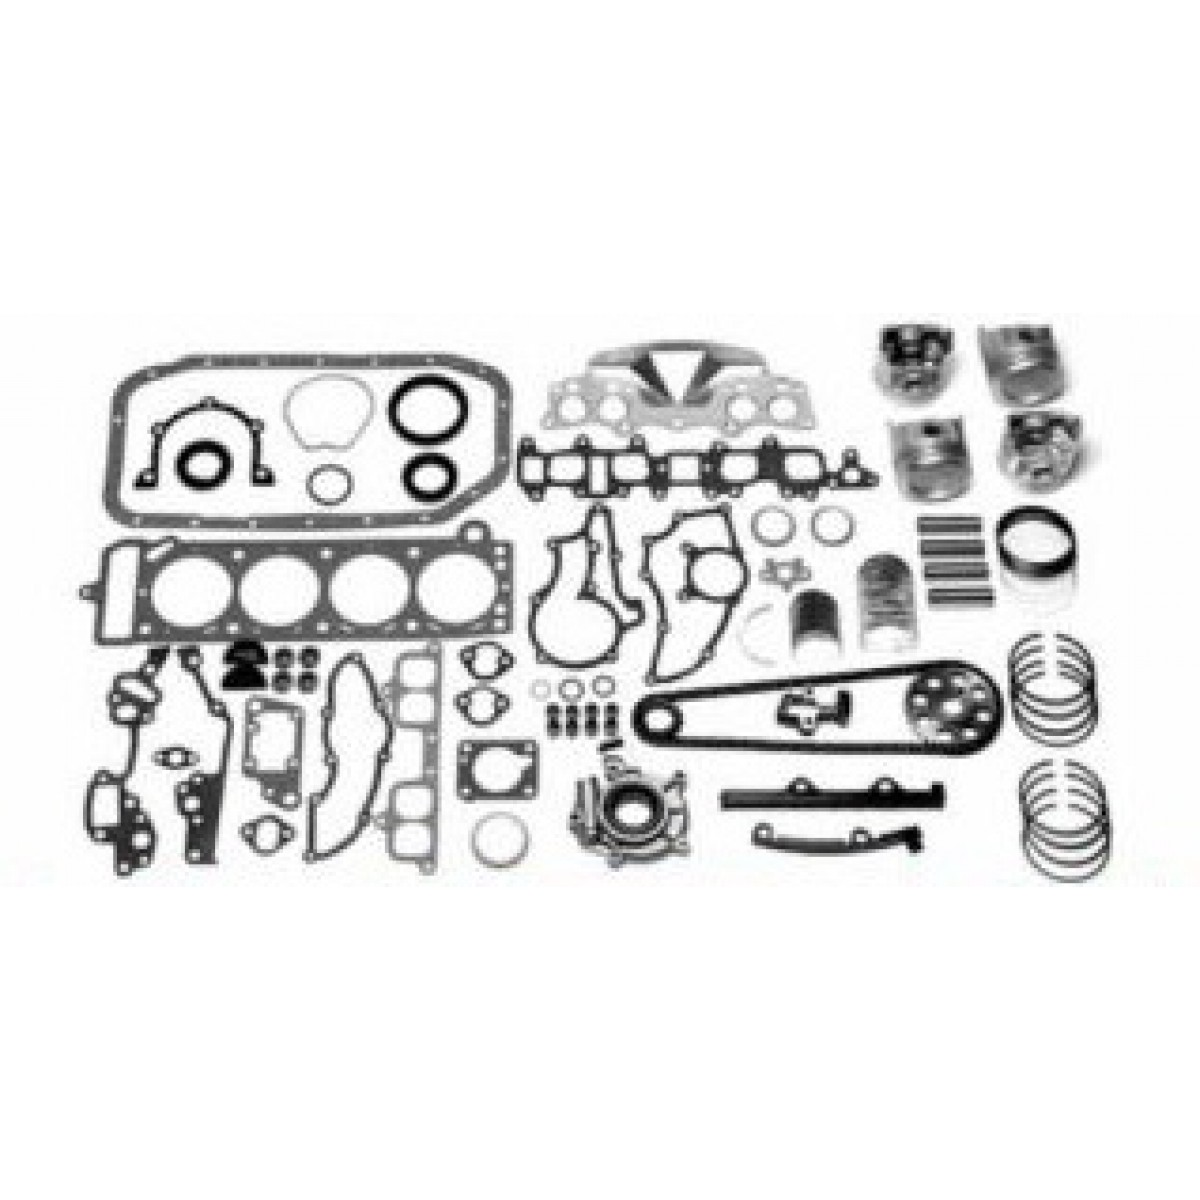 Certified Engine Kit Ek C5